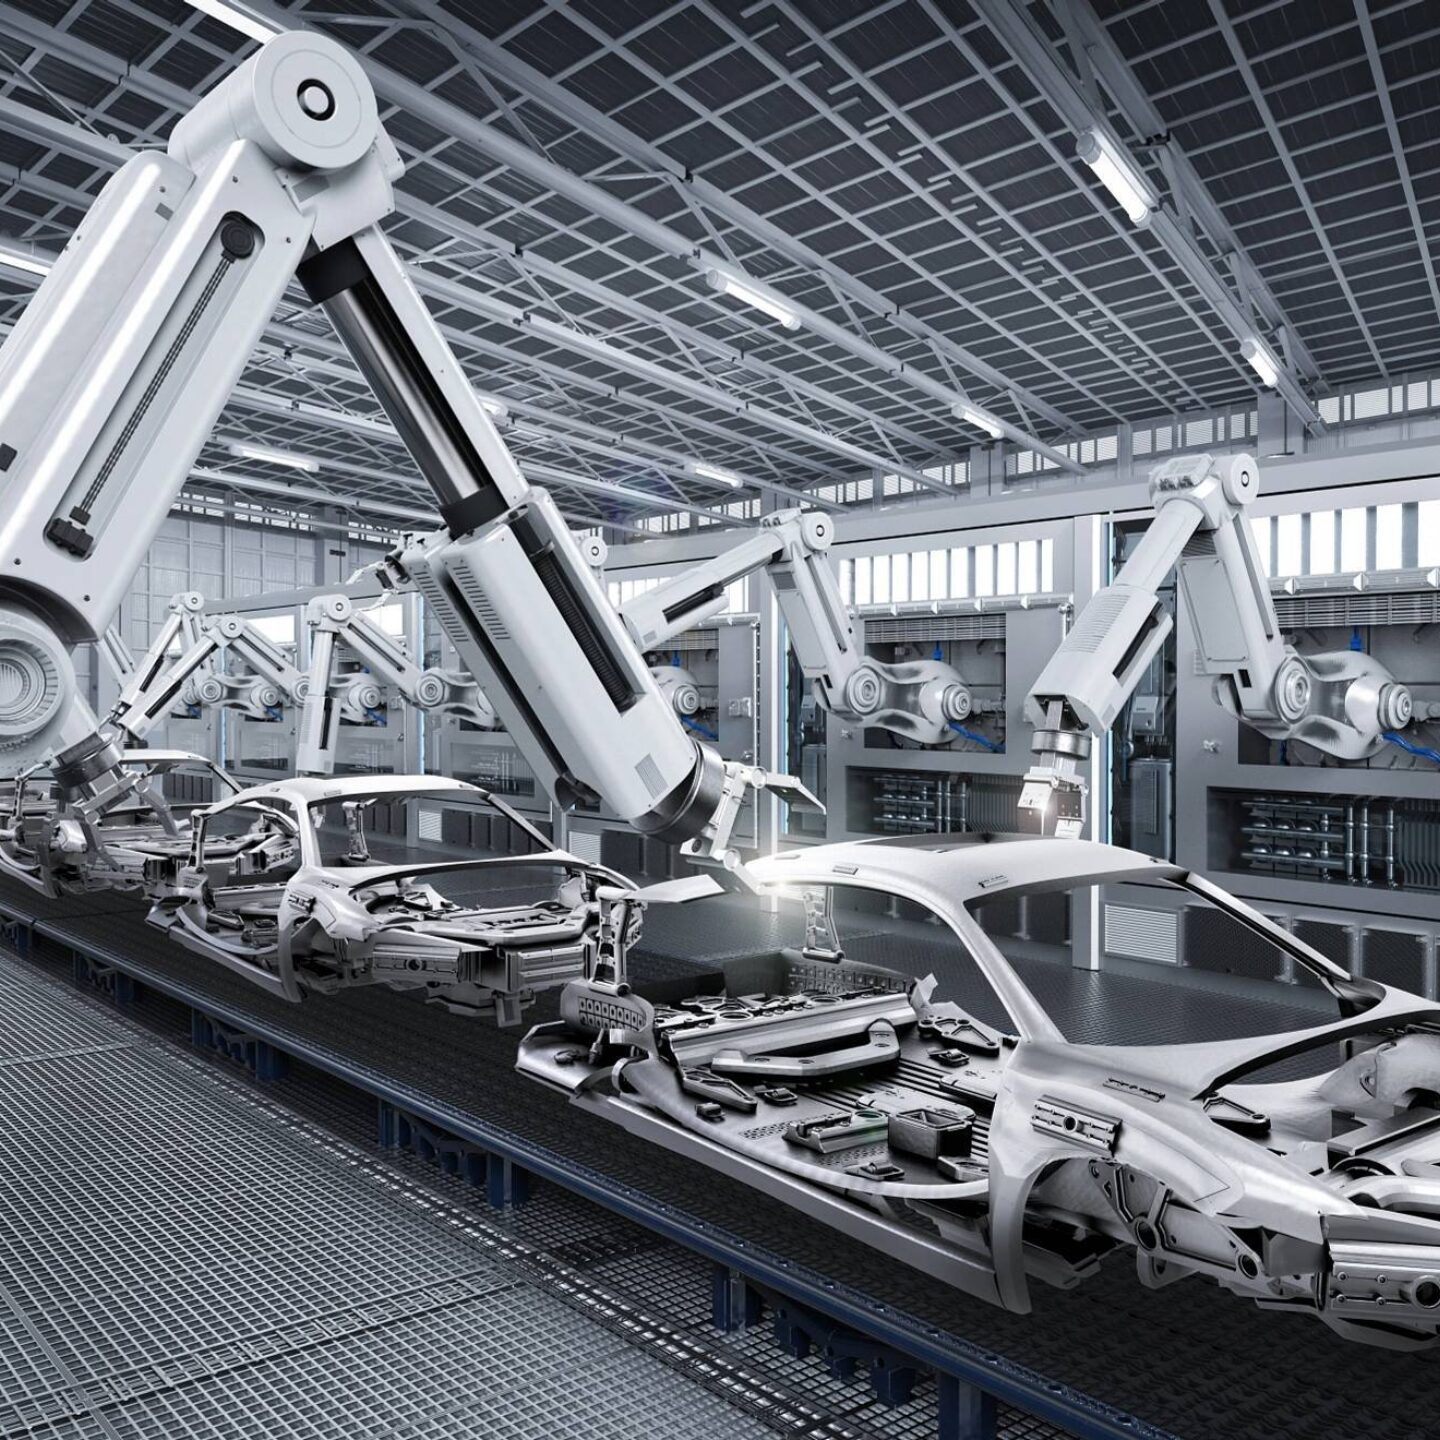 Industrial automation - IAOB and SMMT Provide IATF 16949 Resources | NSF International